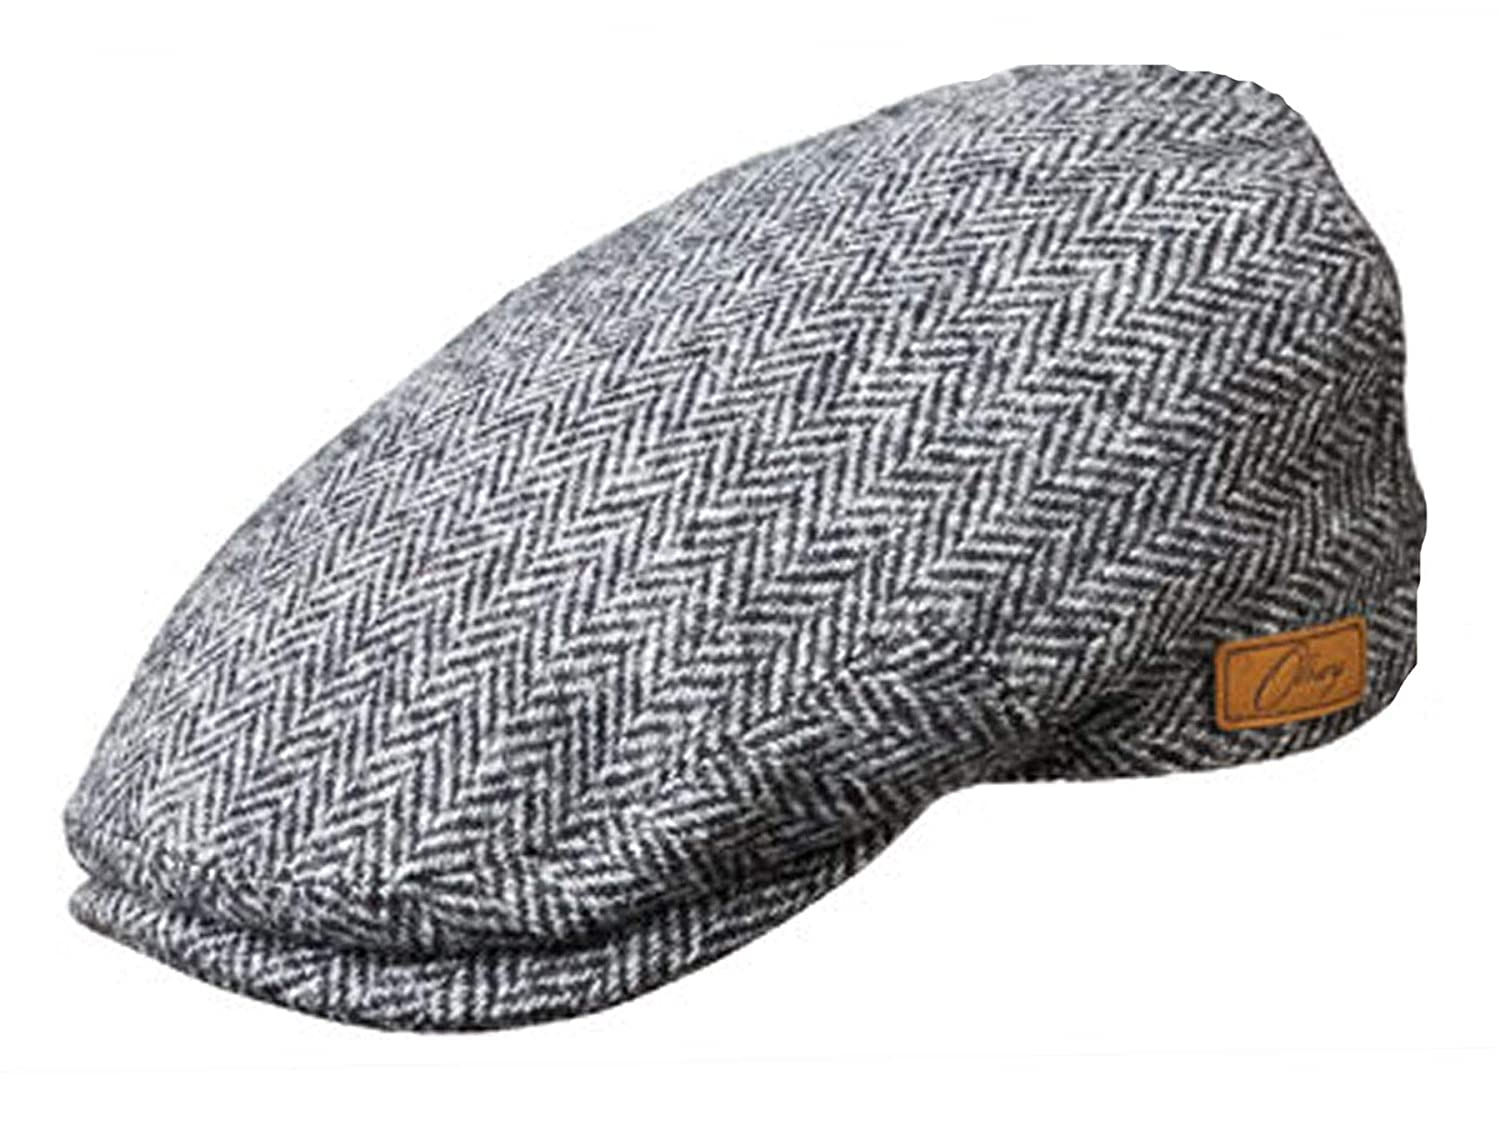 a80d1e5ee4d59 Olney York Wool Tweed Flat Cap at Amazon Men's Clothing store: